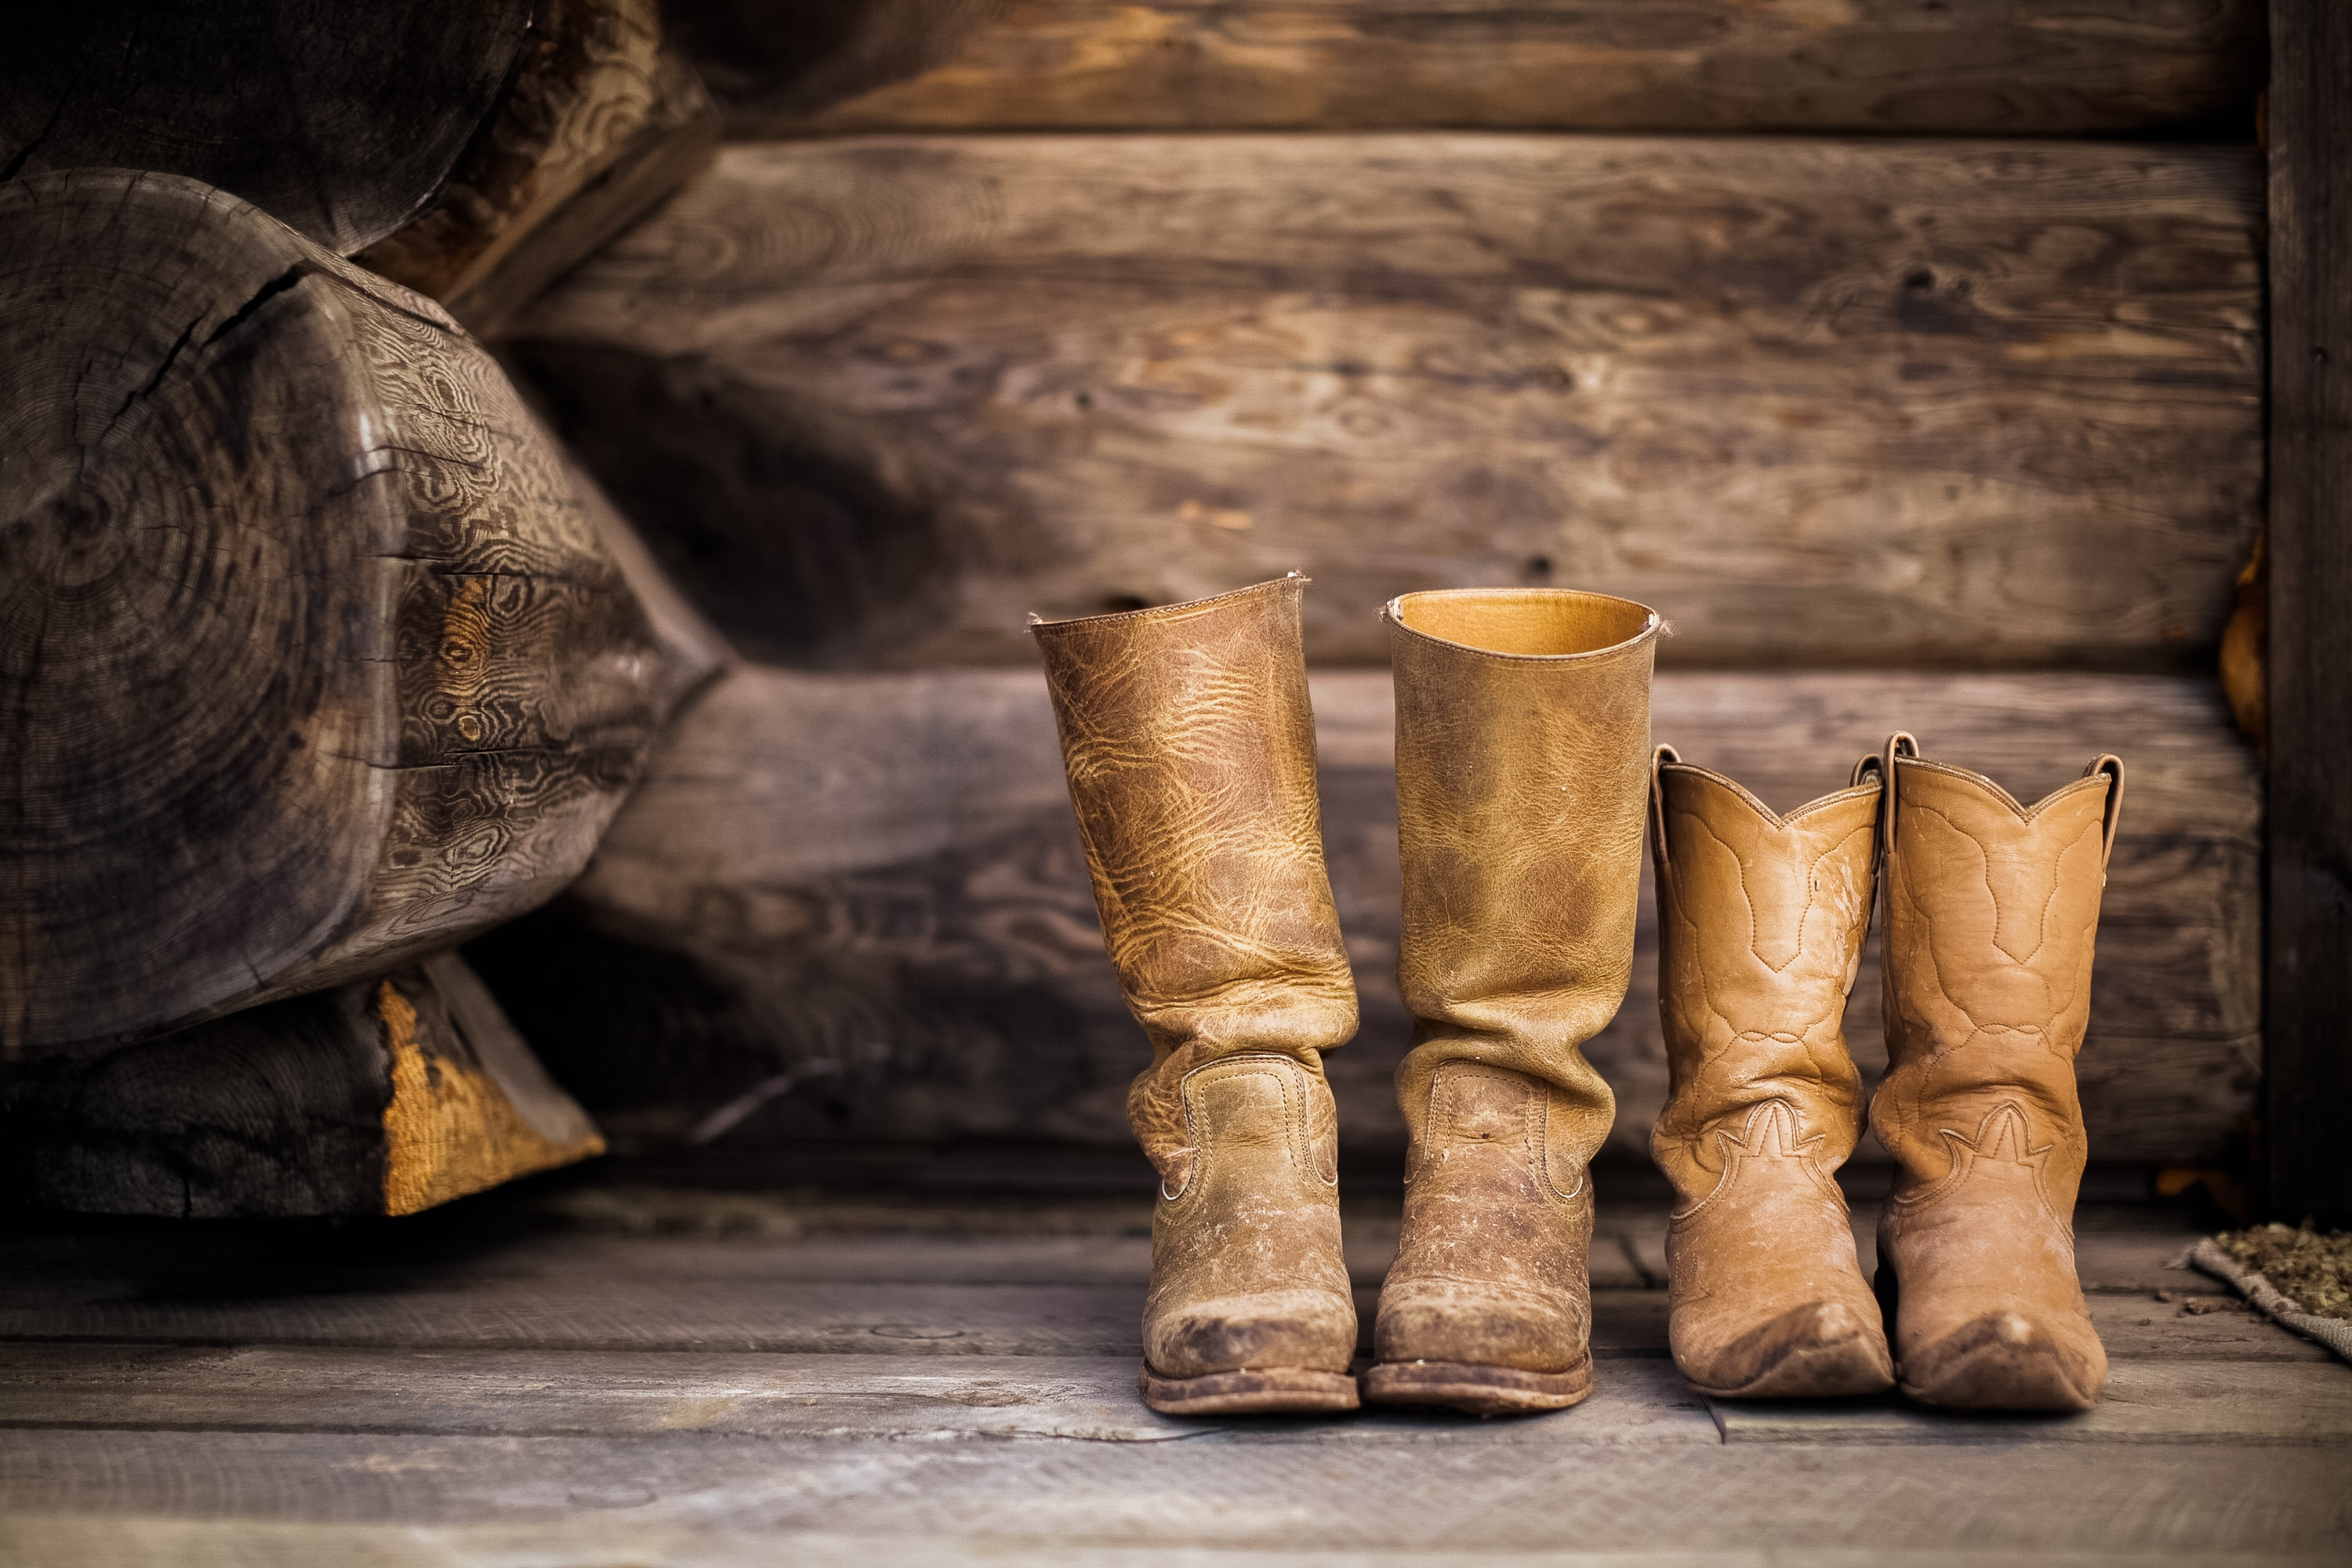 cowboy boots on a wooden floor